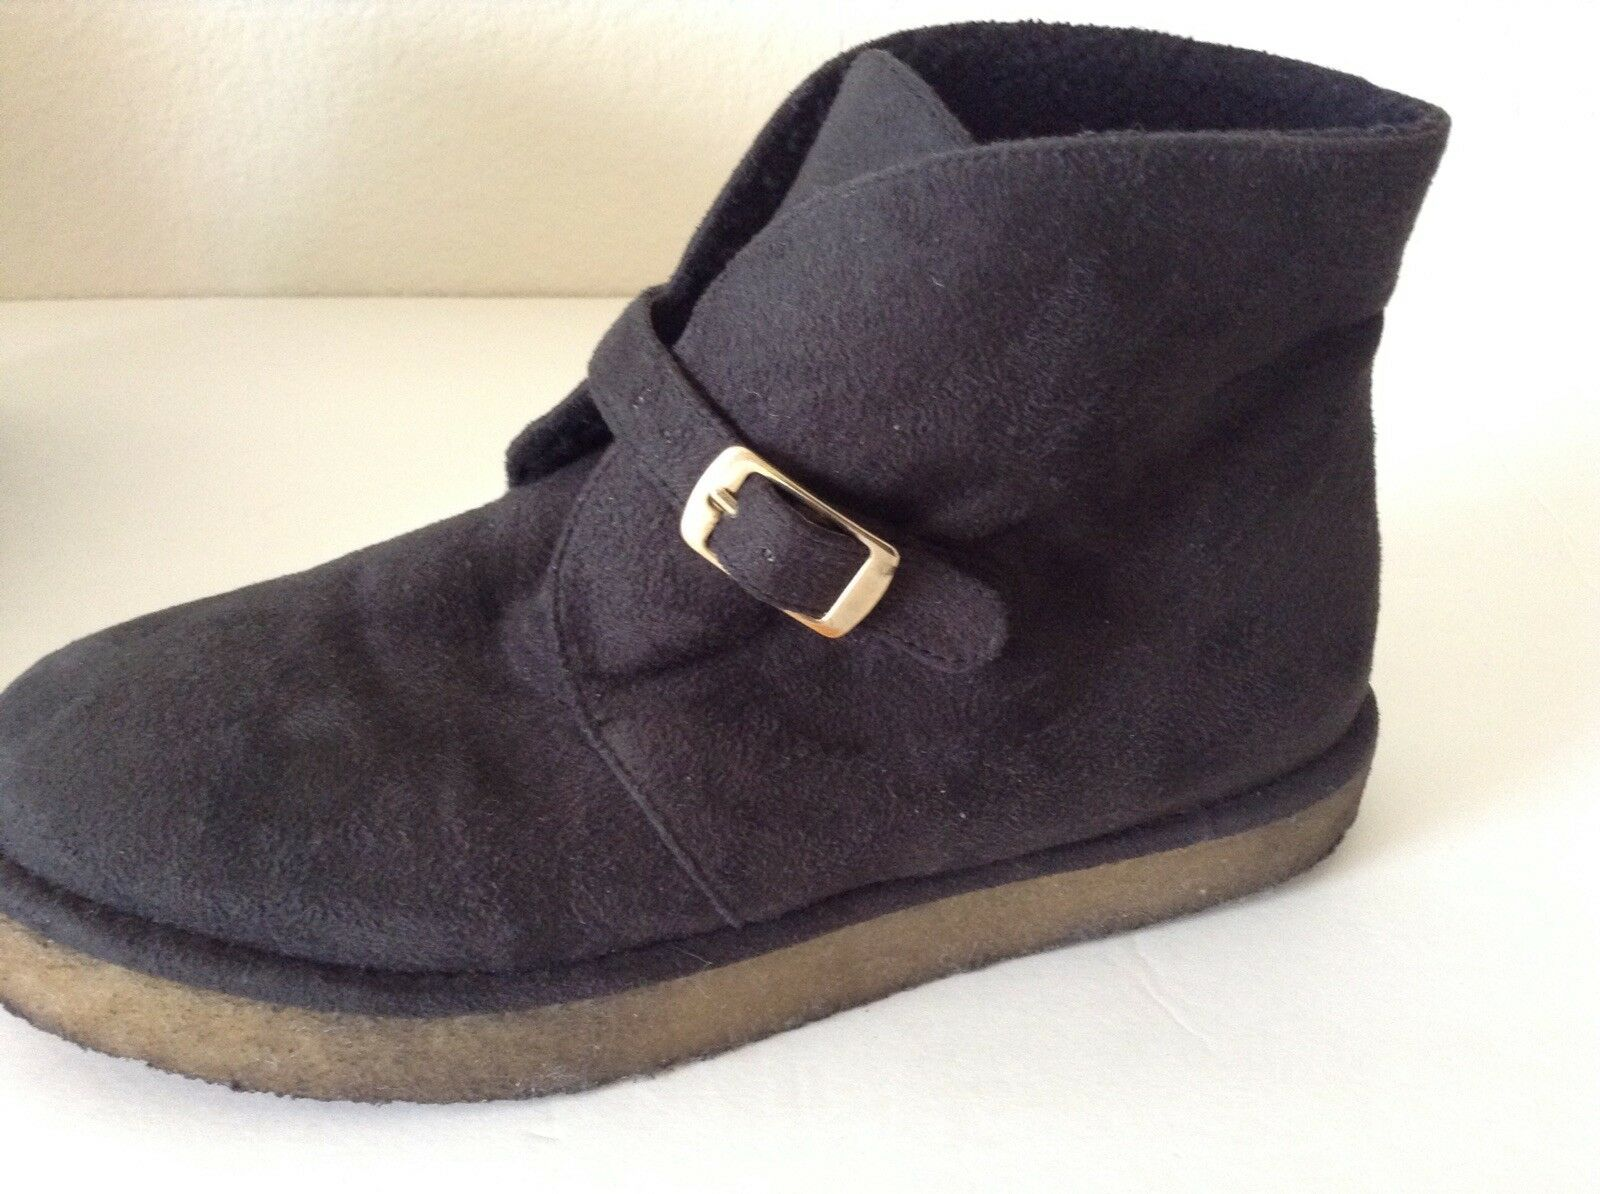 STELLA MCCARTNEY KICKAPOO BLACK VEGAN SUEDE ANKLE ANKLE ANKLE BOOTS SIZE 37  US 7 98f651